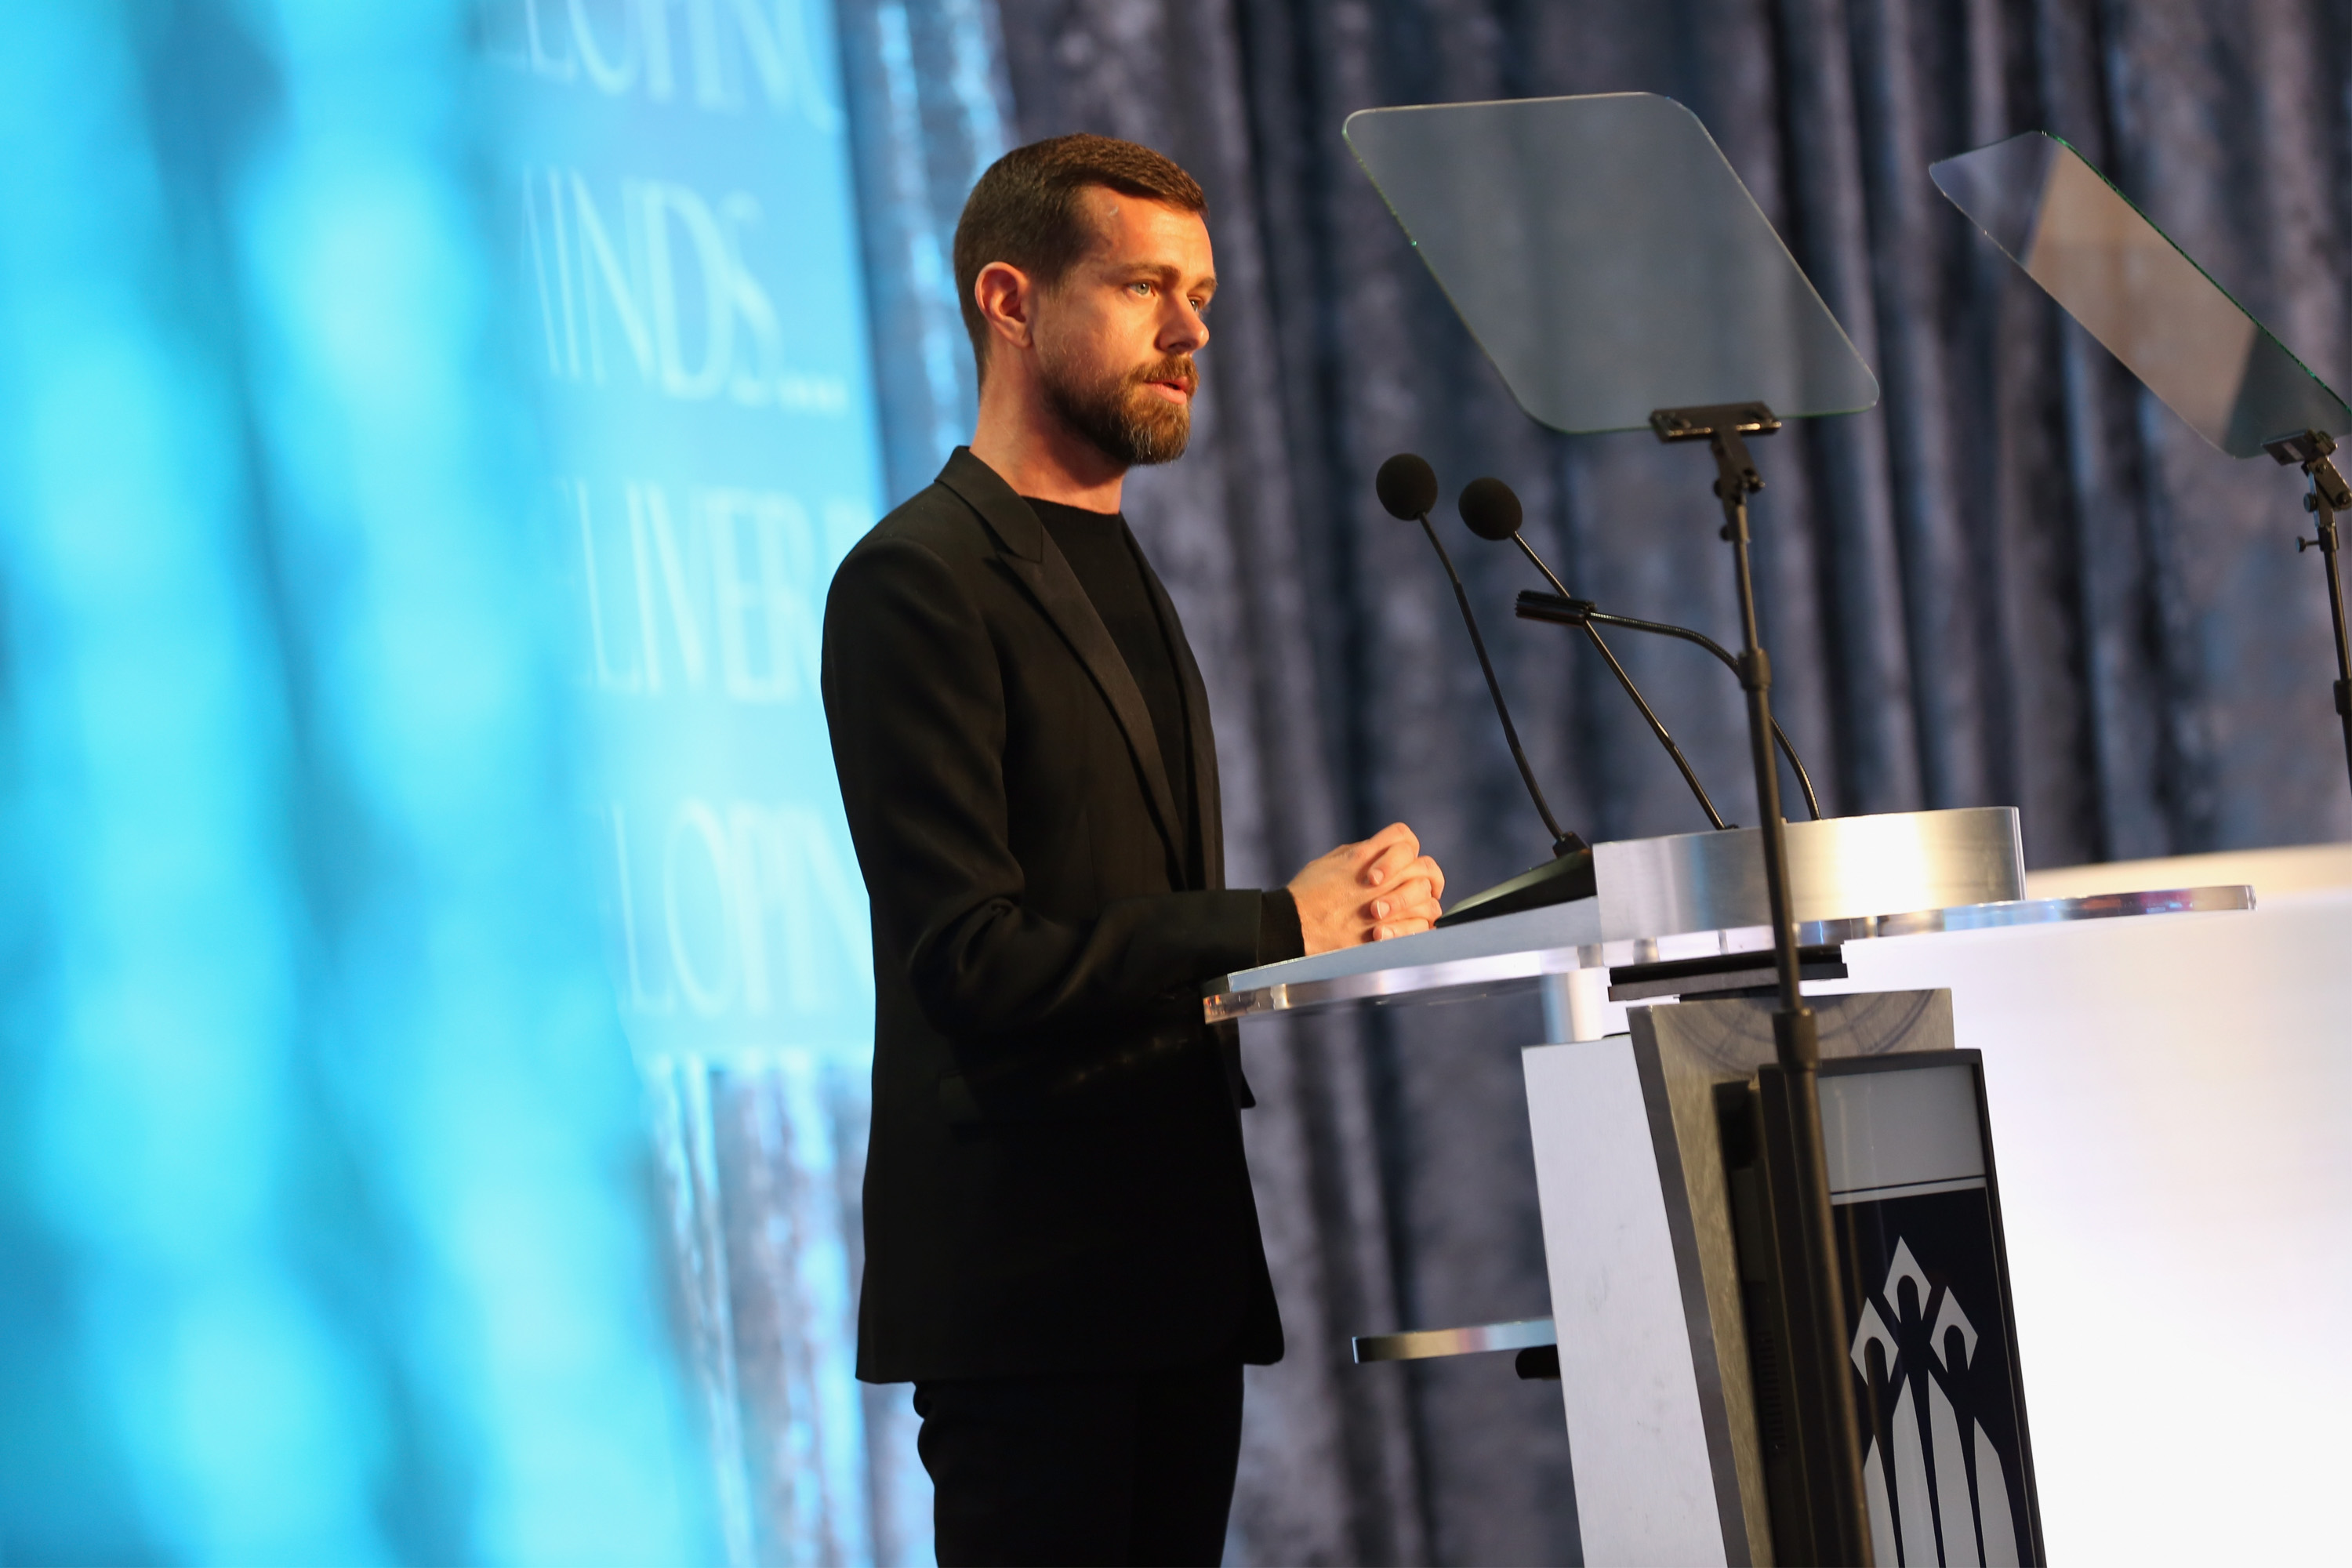 Twitter CEO Jack Dorsey stands at a podium and speaks into microphones